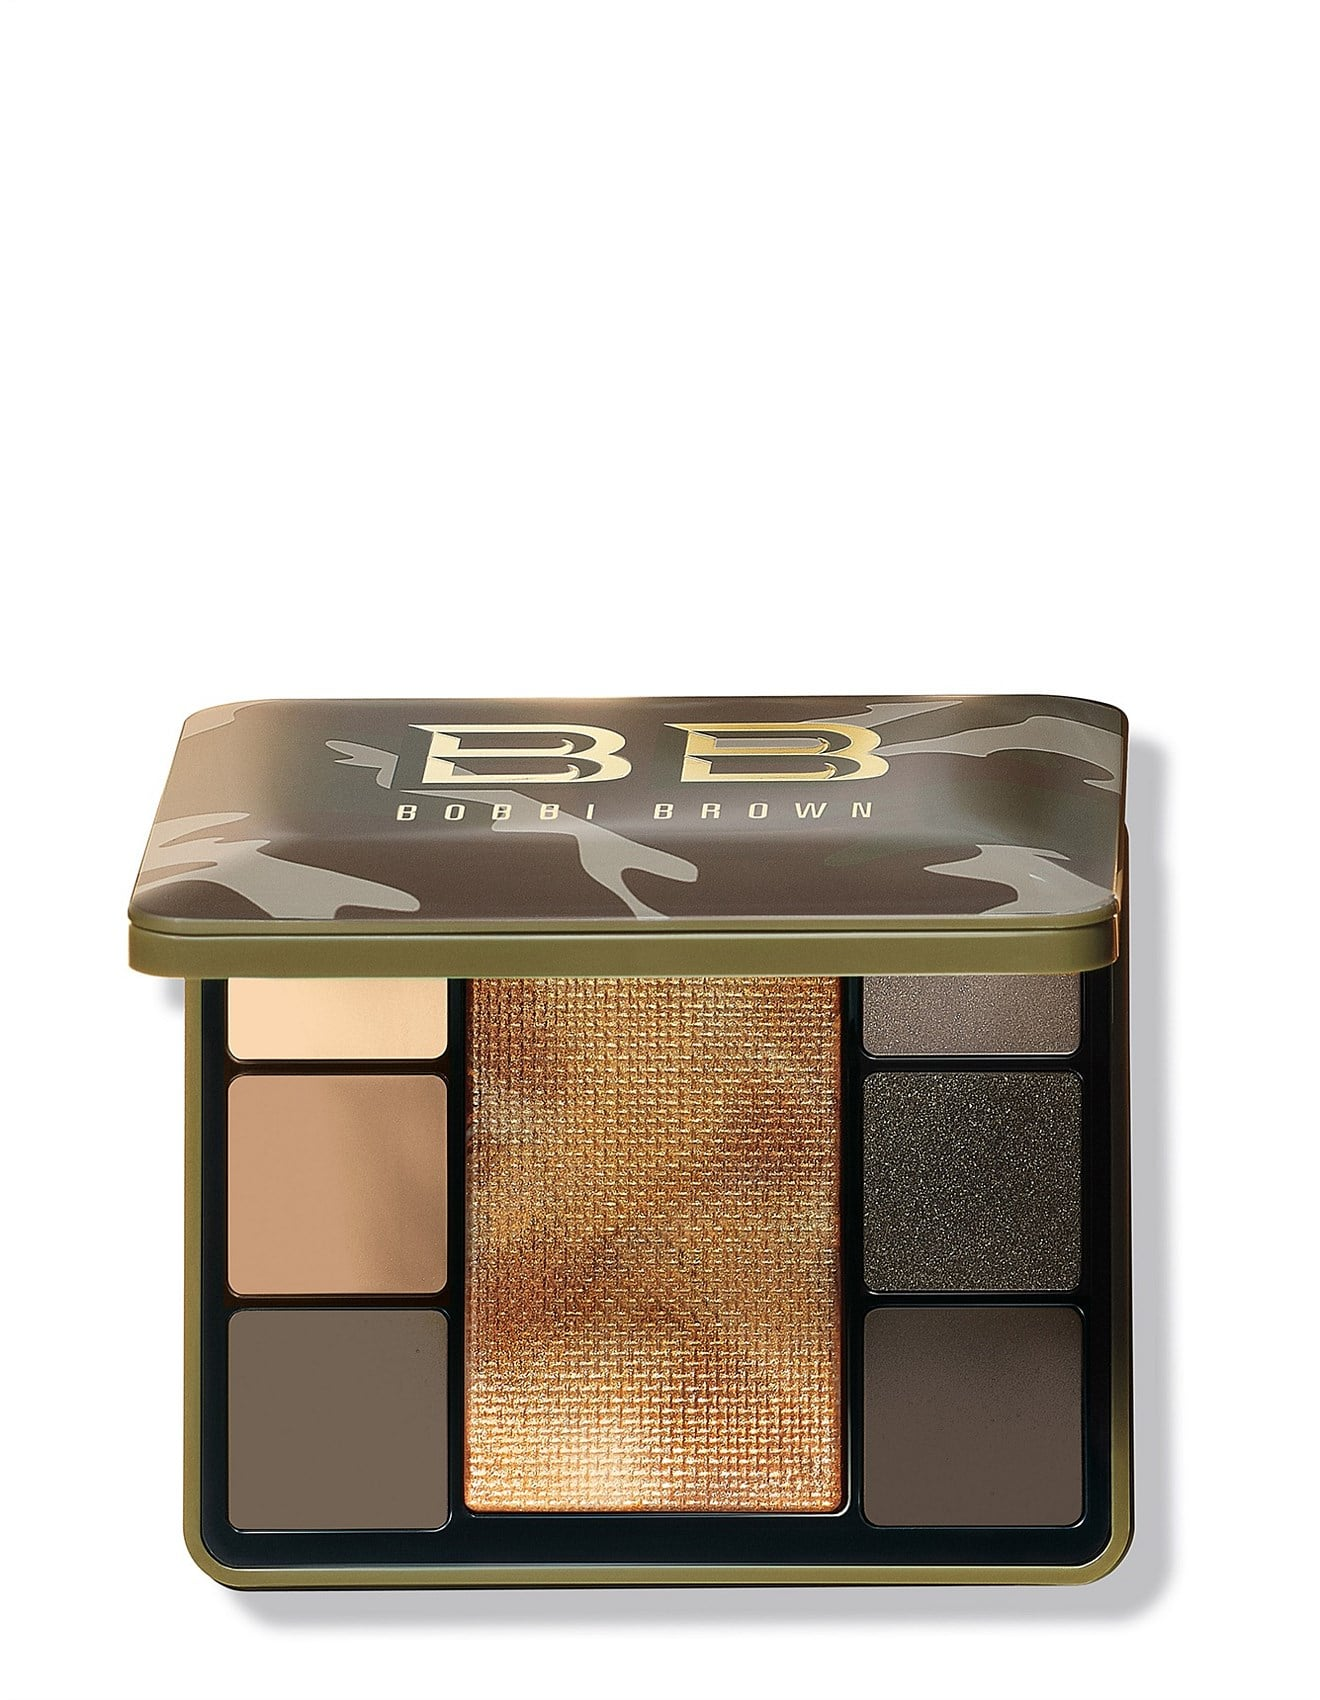 Camo Luxe by Bobbi Brown, the new fall collection, is all